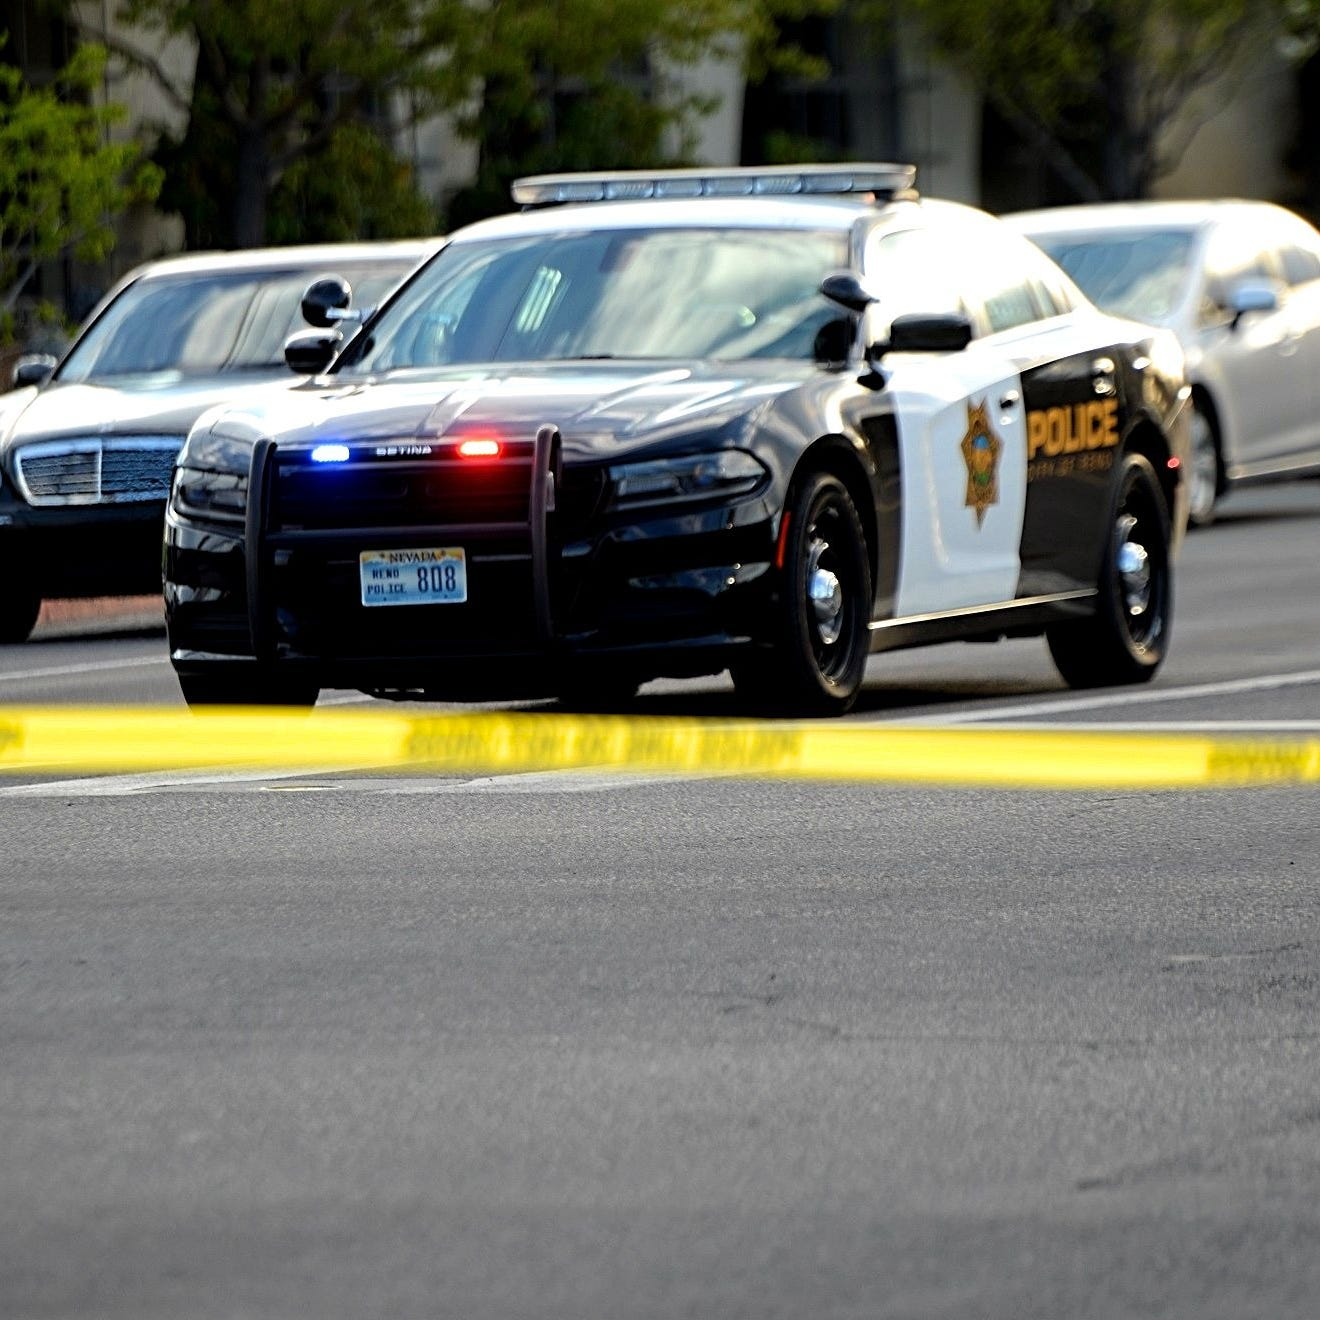 Reno police: Crackdown on illegal street racing ends with 22 citations, 4 arrests